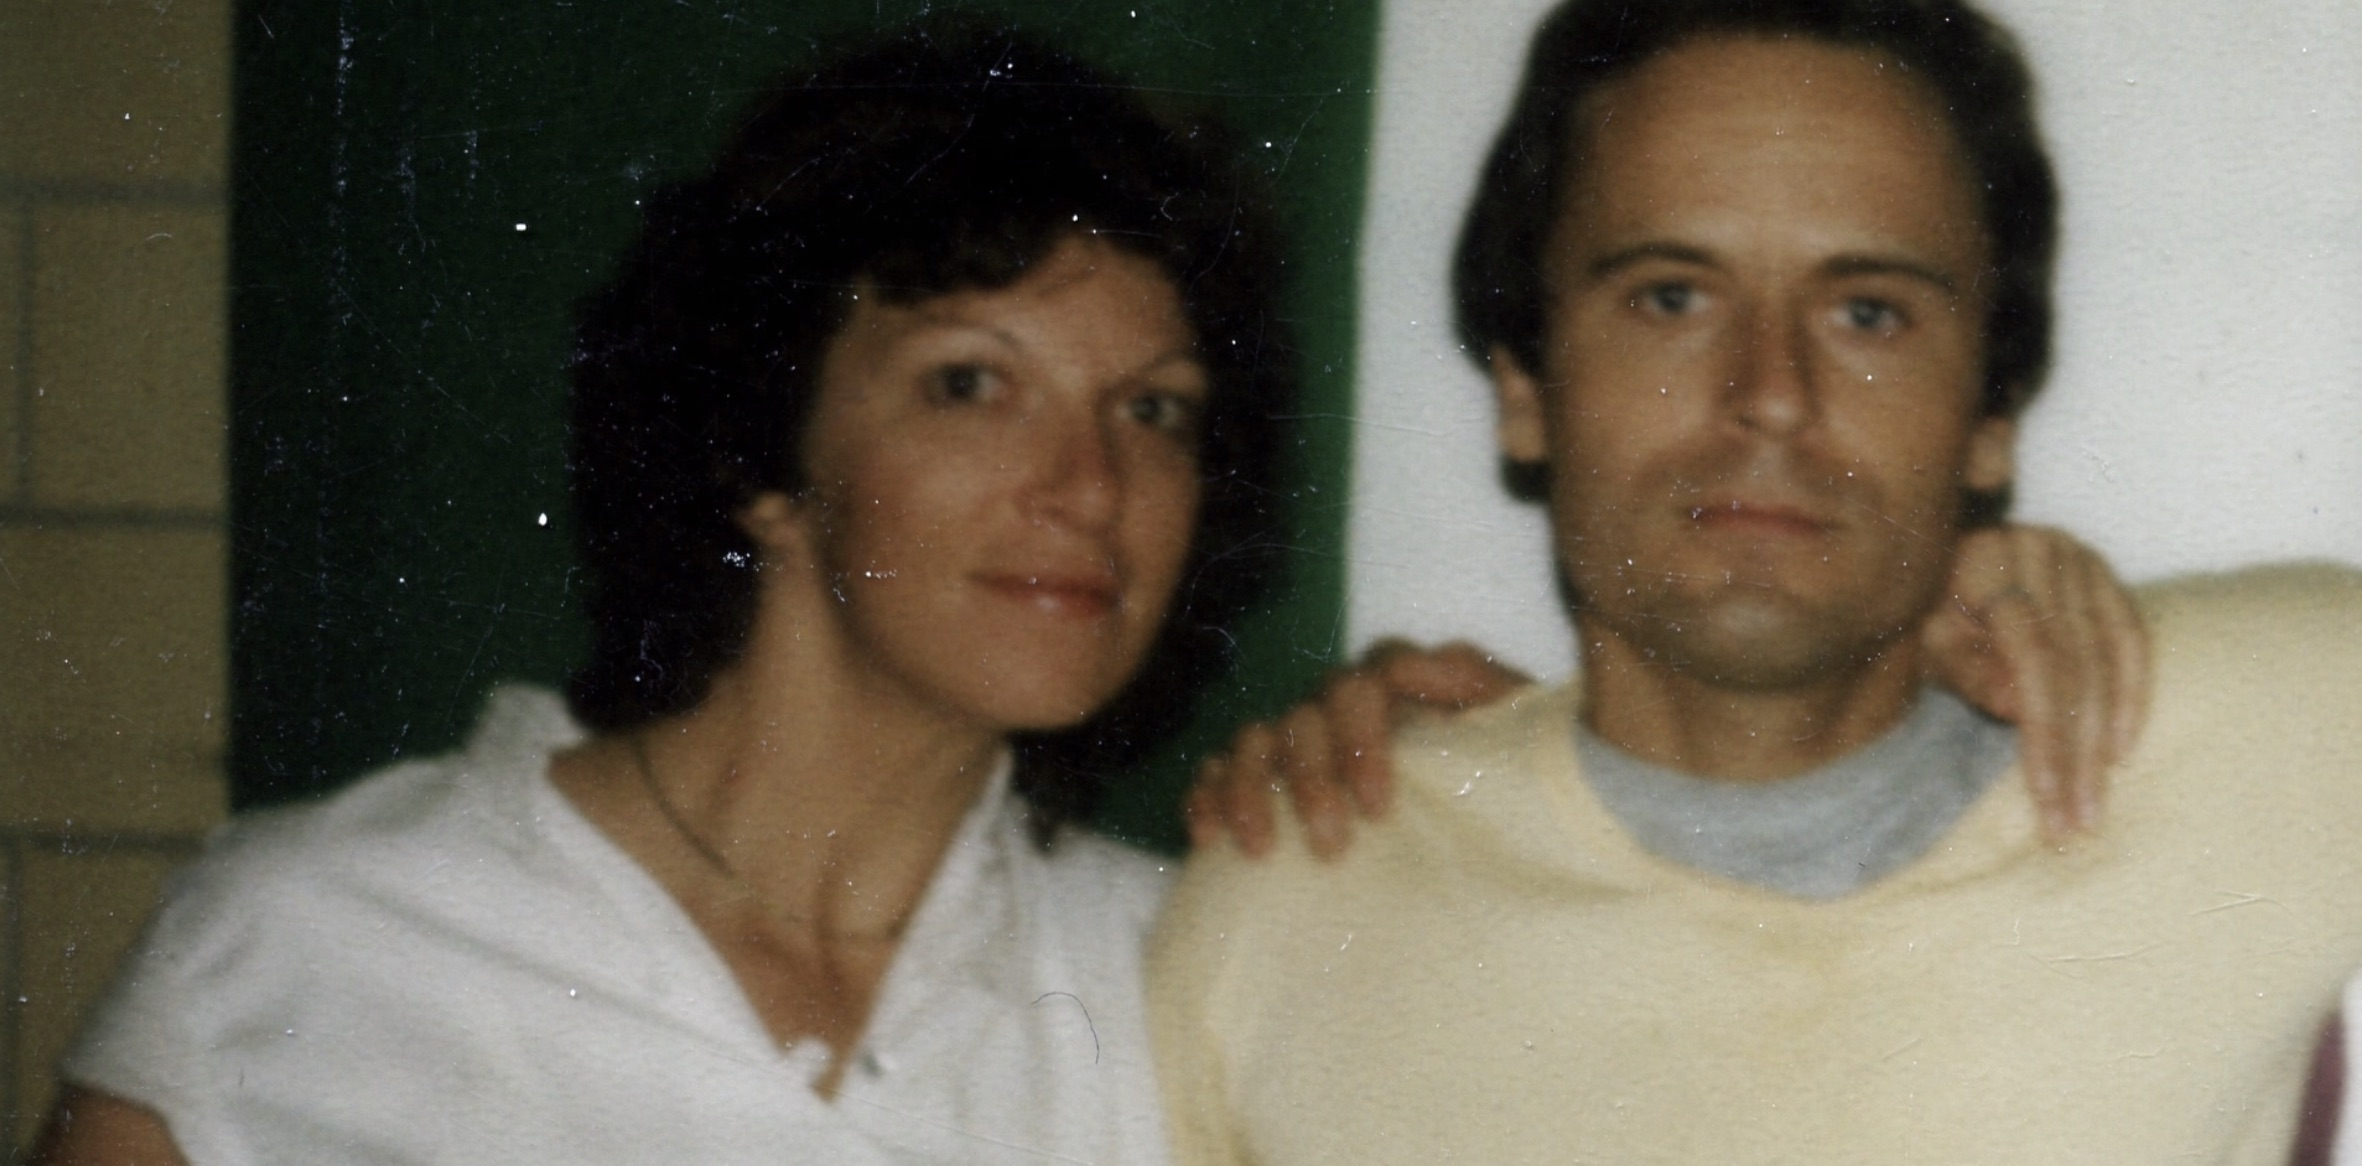 Ted Bundy Wife Carole Ann Boone Gave Birth to His Child a Year after His 3rd Death Sentence!